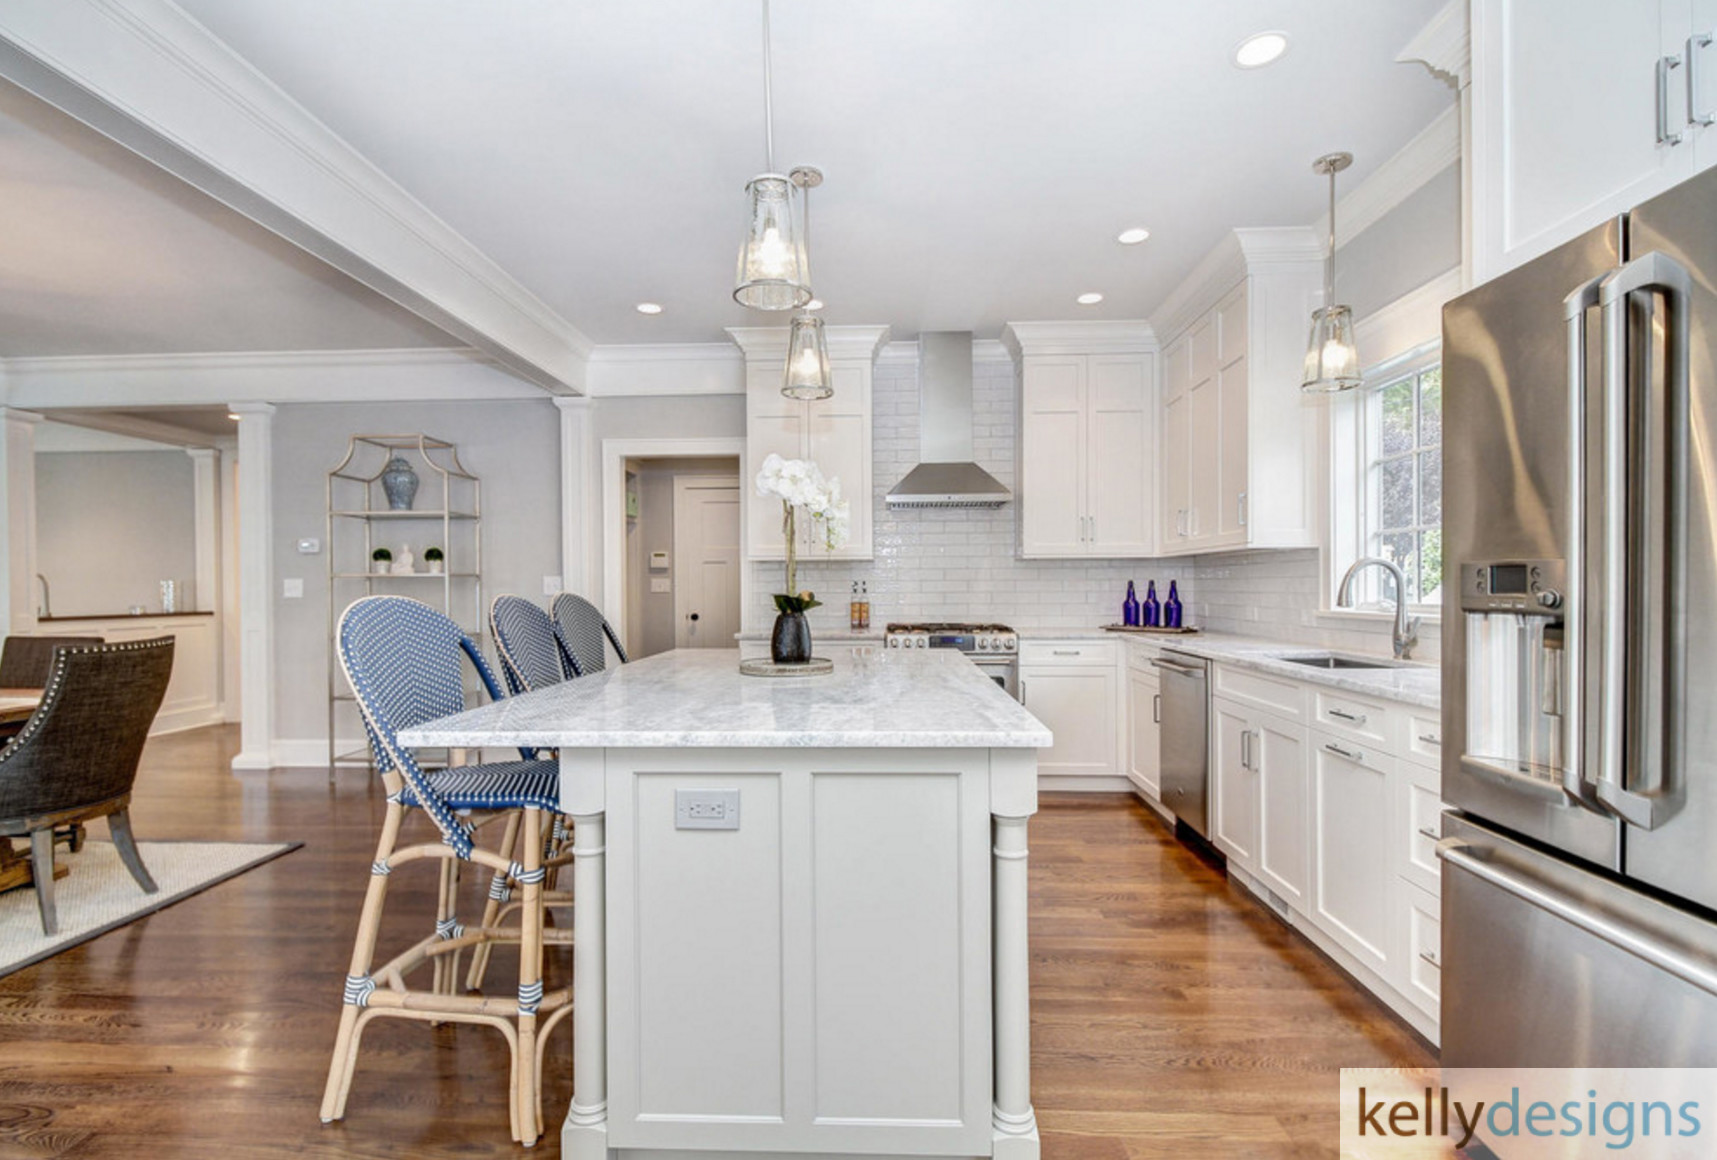 Winning On Wormwood Kitchen Interior Design By Kellydesigns